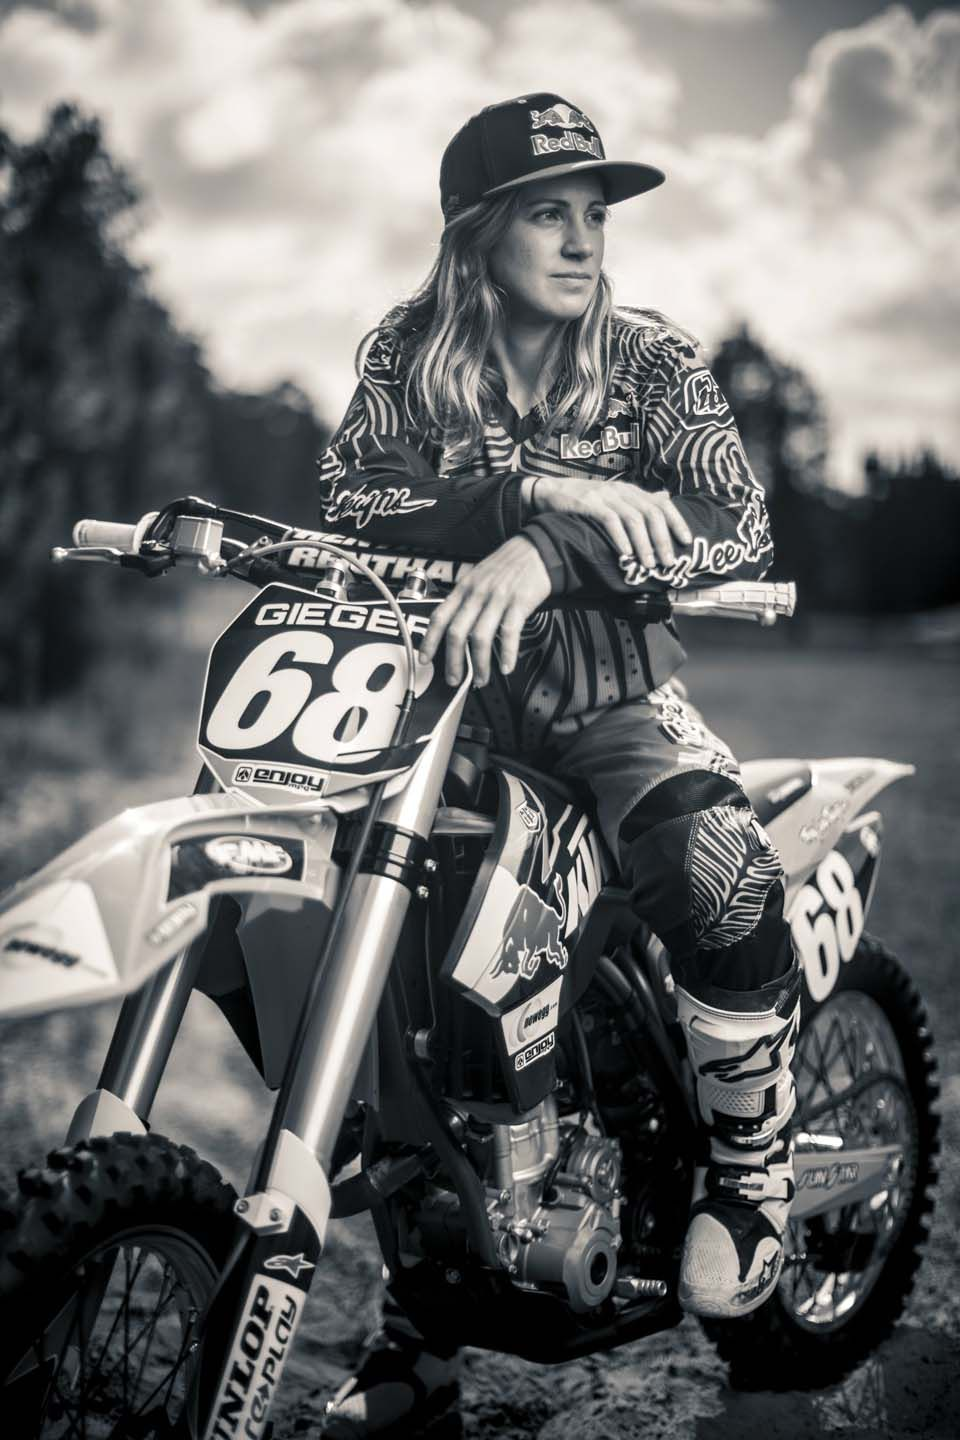 Nude chicks with dirt bikes